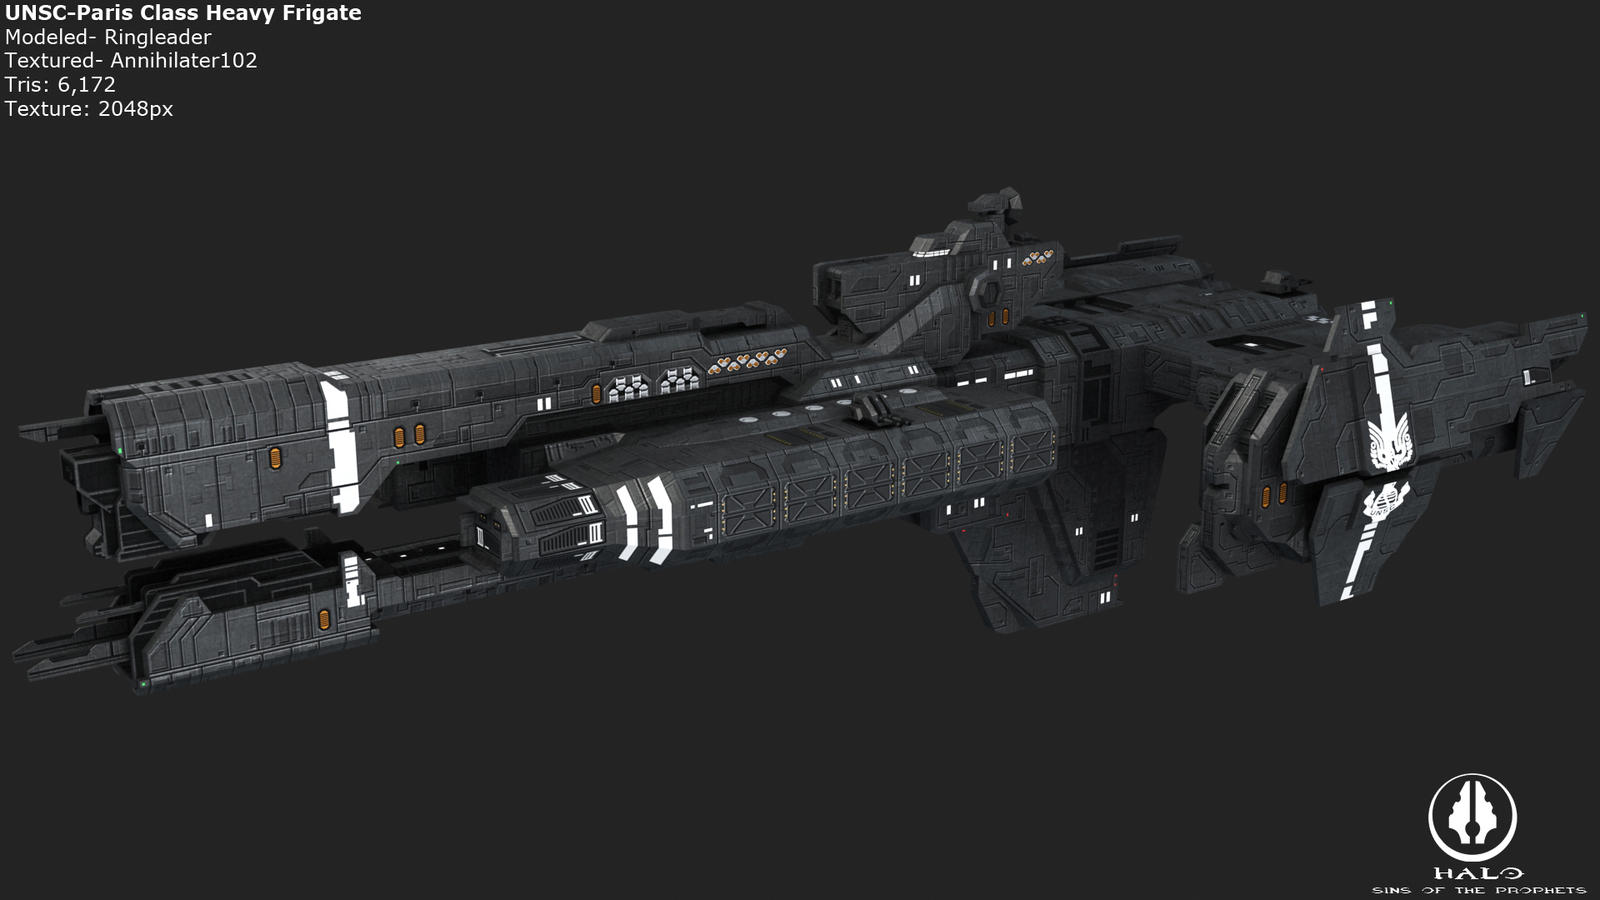 buy helicopters with Unsc Paris Class Heavy Frigate 298559289 on Kazi Sluban Building Blocks Field Army Military Transport 151071098682 furthermore Westland Aw101 Vvip together with Afv drawings additionally UNSC Falcon 337617201 further Leonardo S Aerial Screw 349862542.